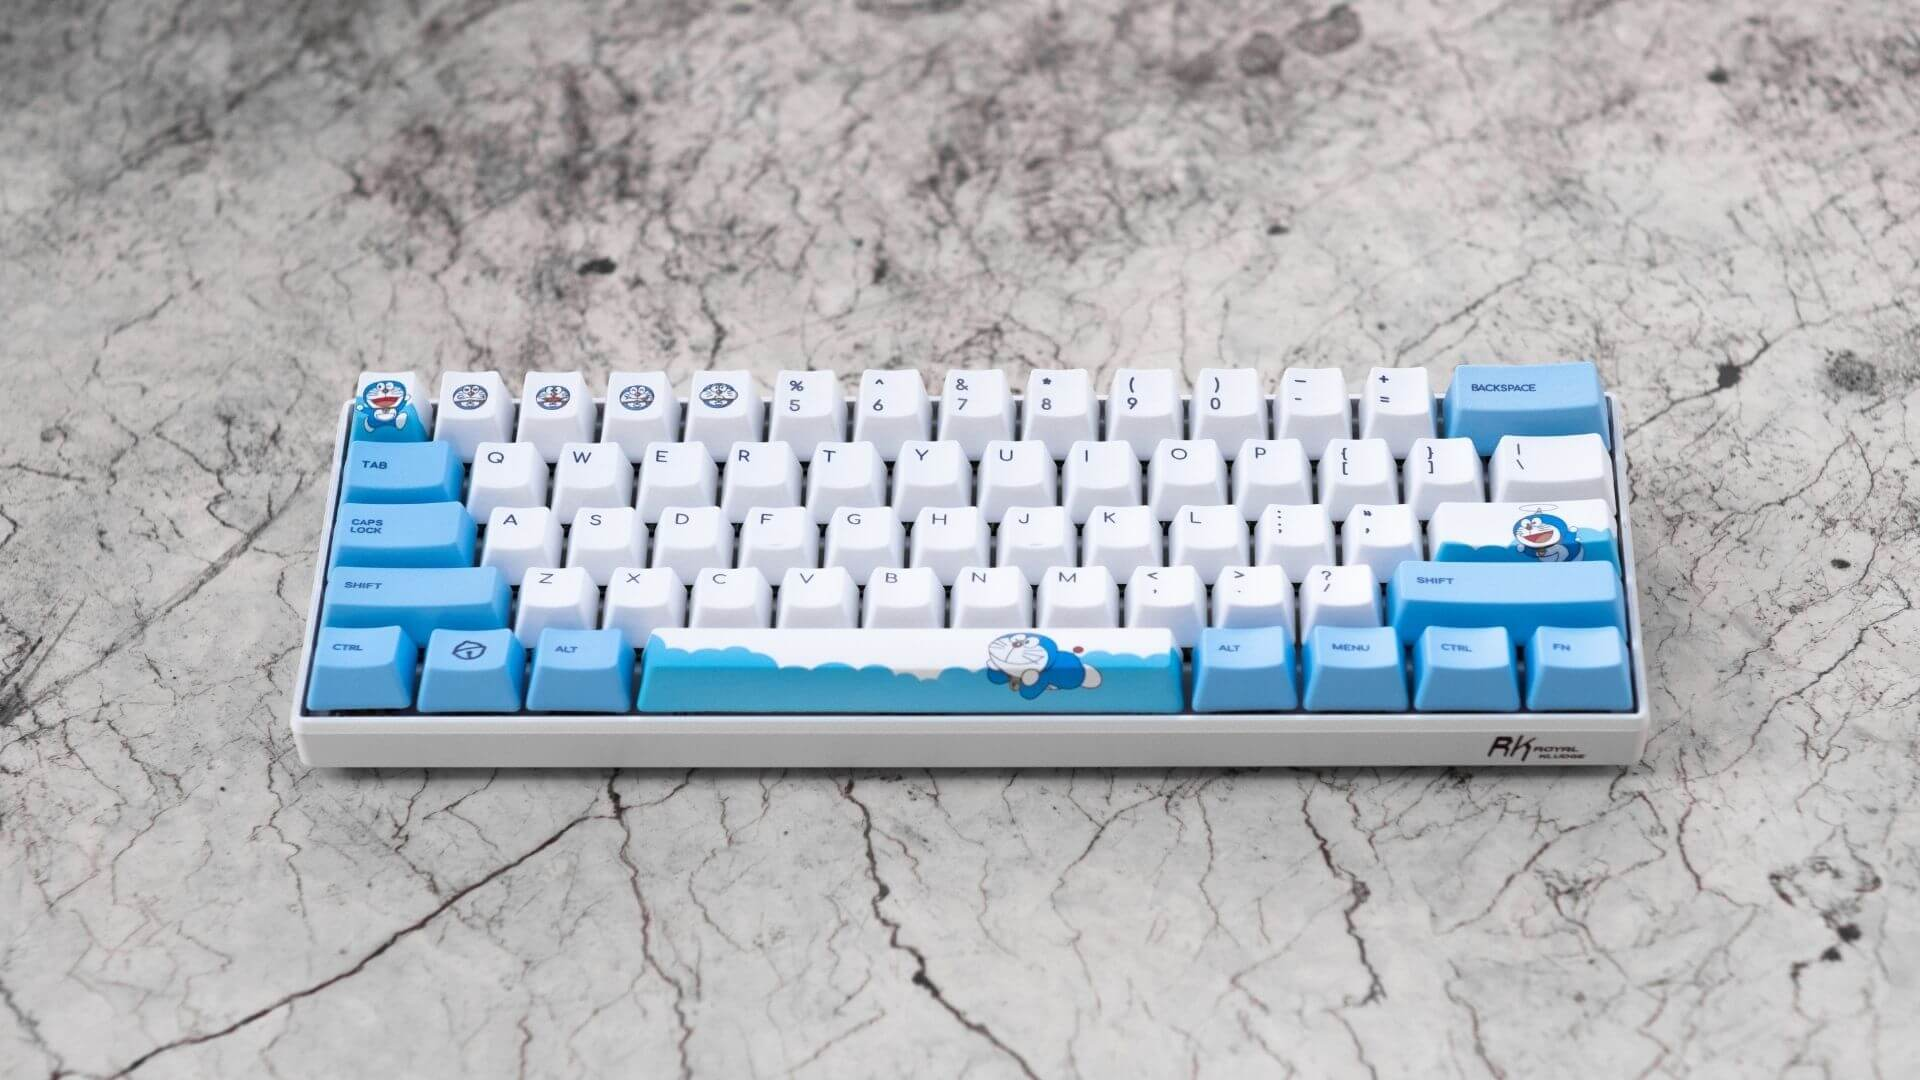 What to look for in a Gaming Keyboard?